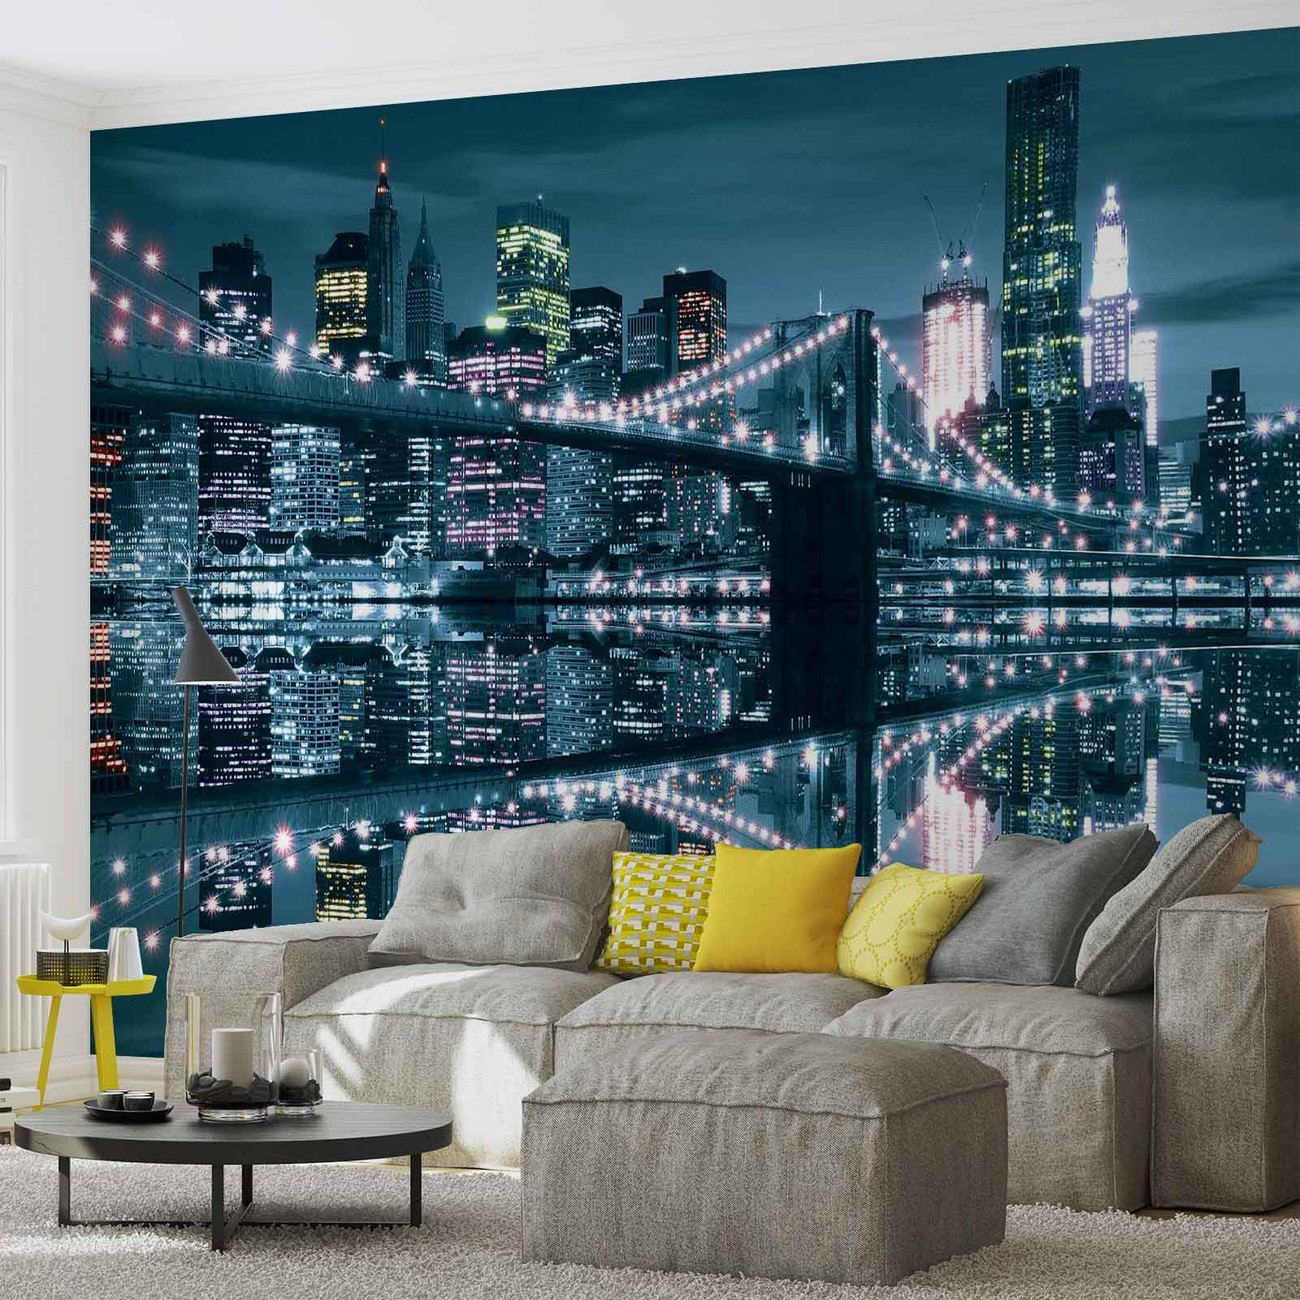 new york city skyline brooklyn bridge wall paper mural buy at europosters. Black Bedroom Furniture Sets. Home Design Ideas